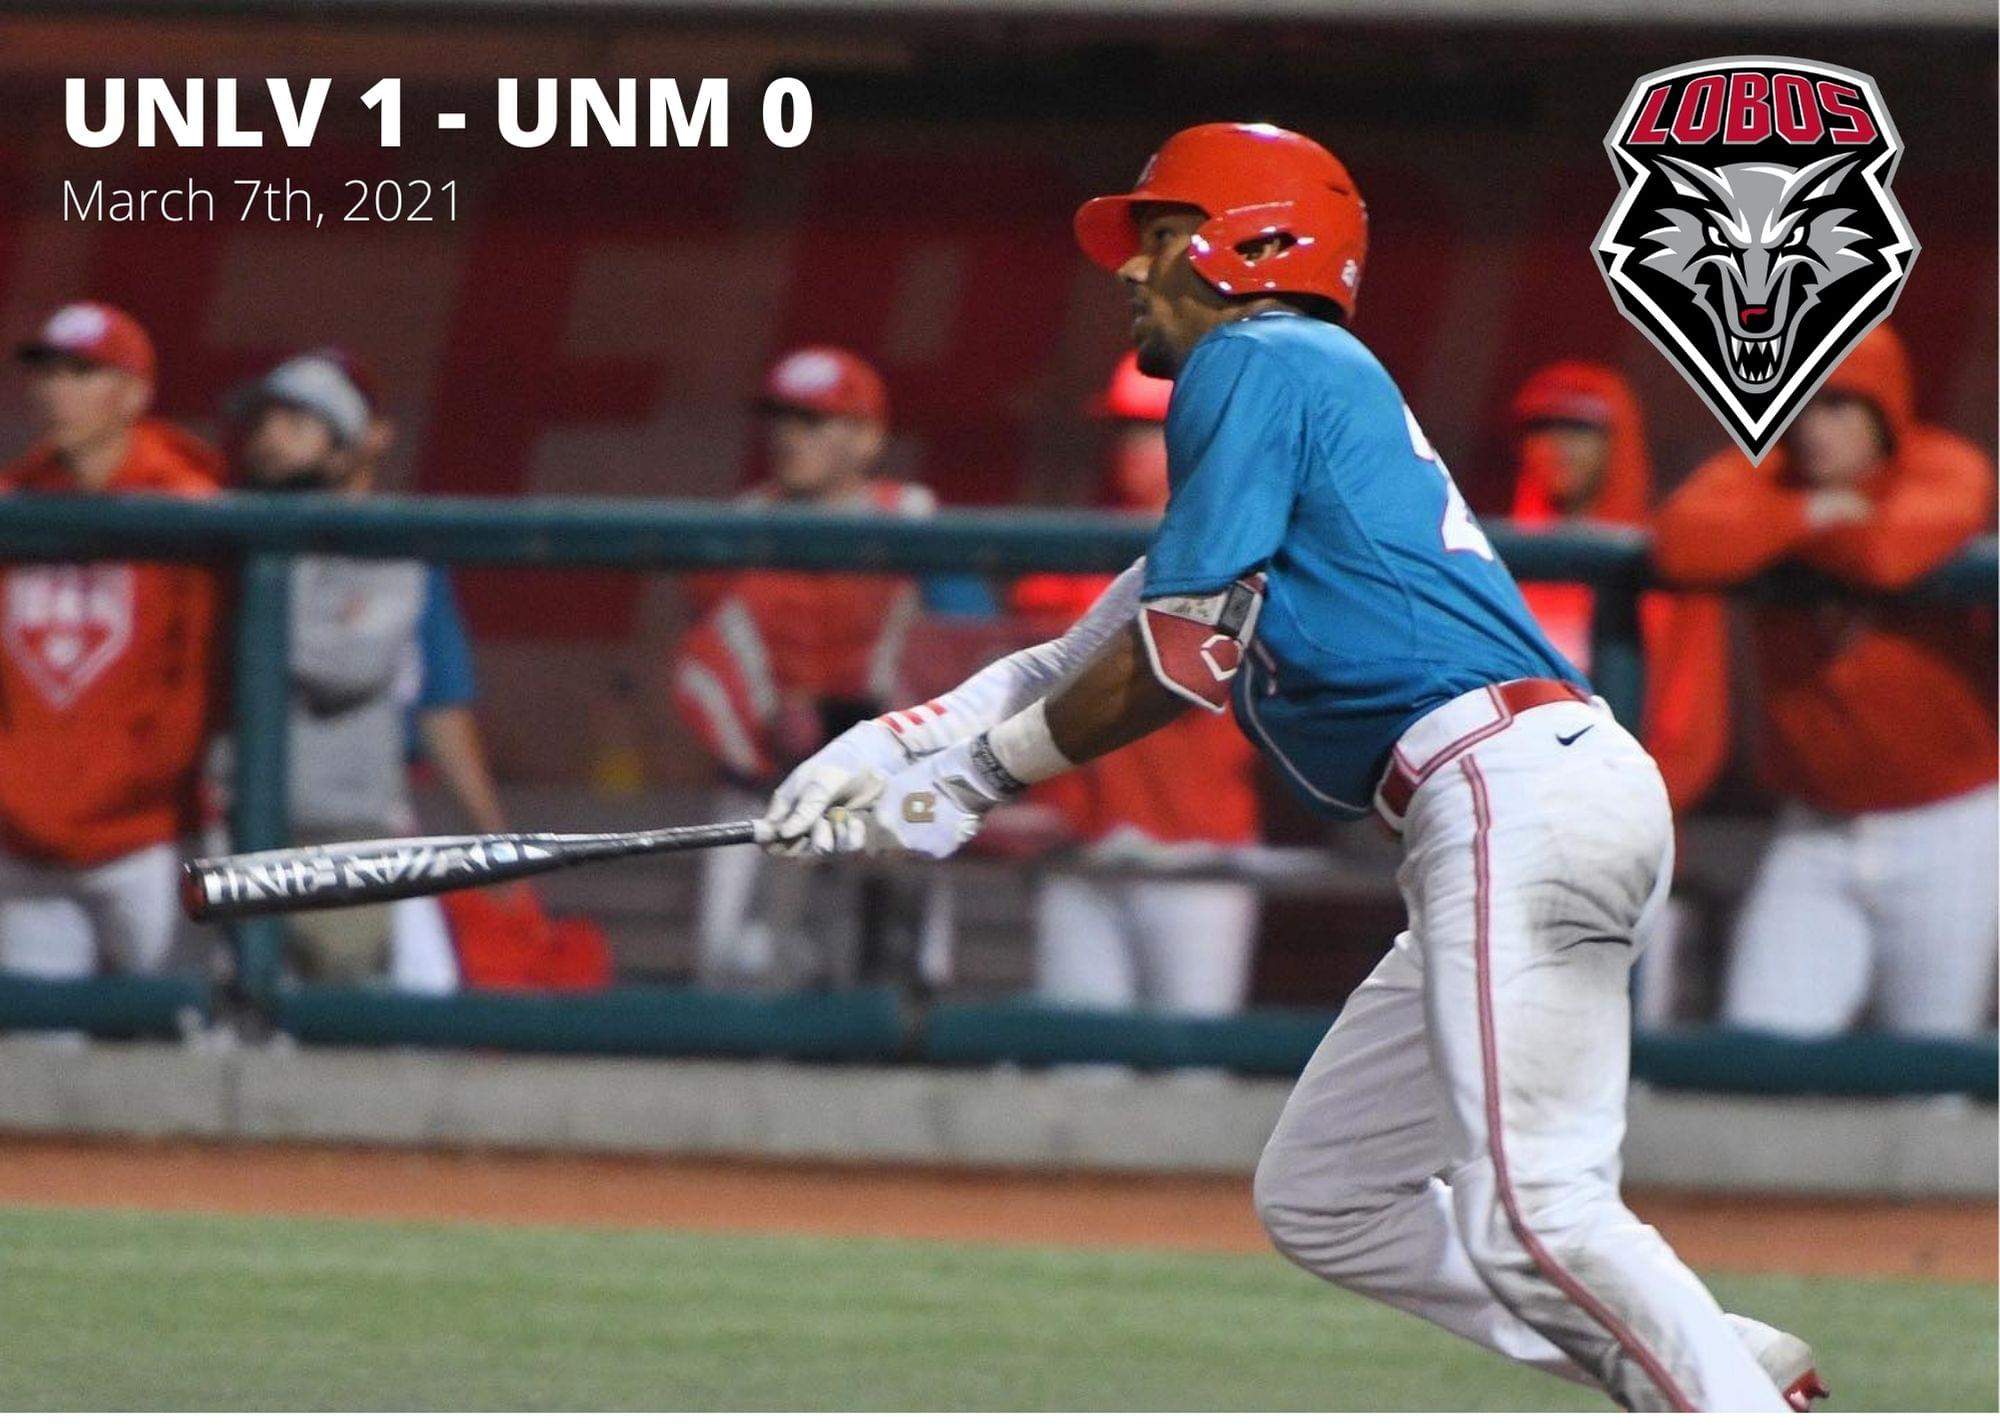 UNM Baseball: Lobos fall to UNLV 1-0 in 11 innings